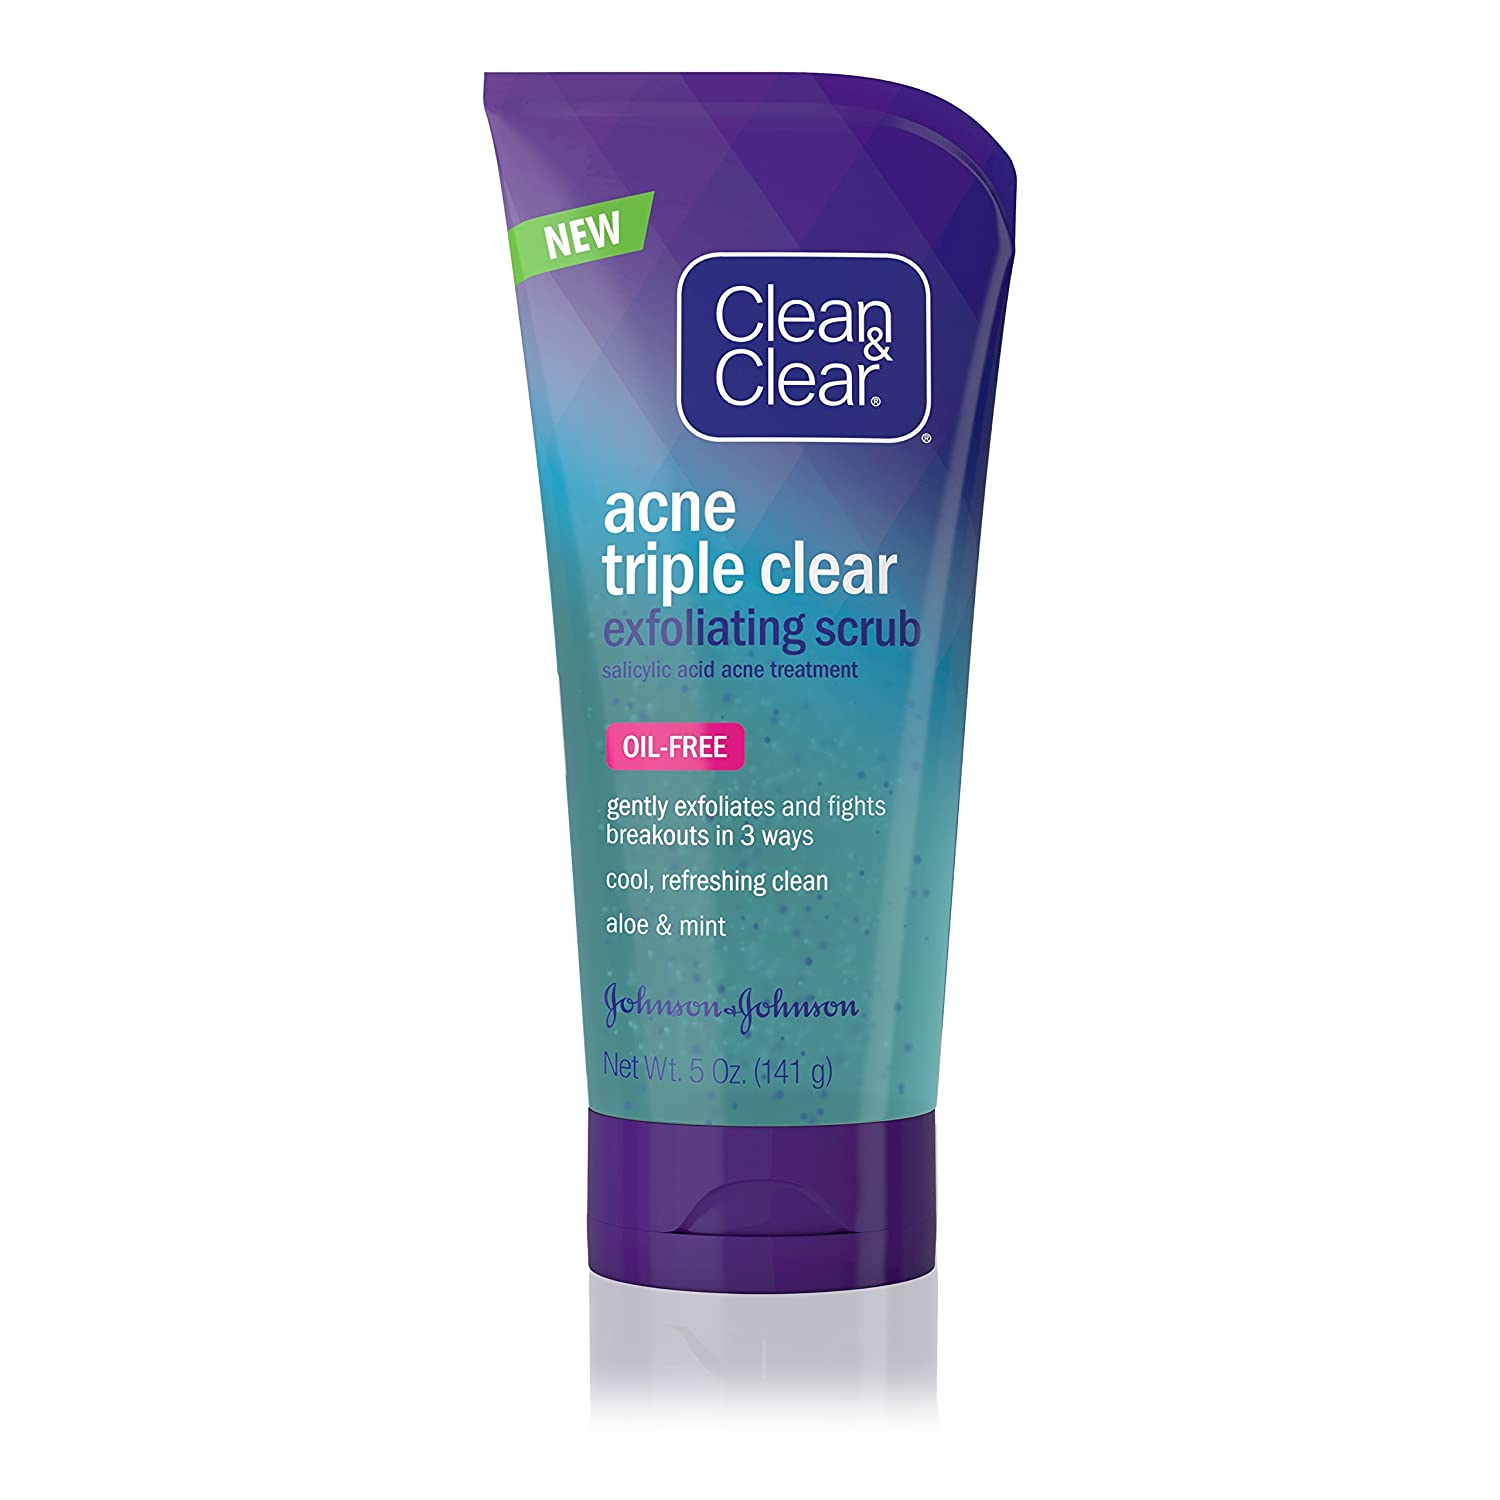 Clean & Clear Acne Triple Clear Exfoliating Facial Scrub with Salicylic Acid Acne Medicine, Aloe & Mint for Acne-Prone Skin Care, Oil-Free & Non-Comedogenic, 5 oz (Pack of 6)